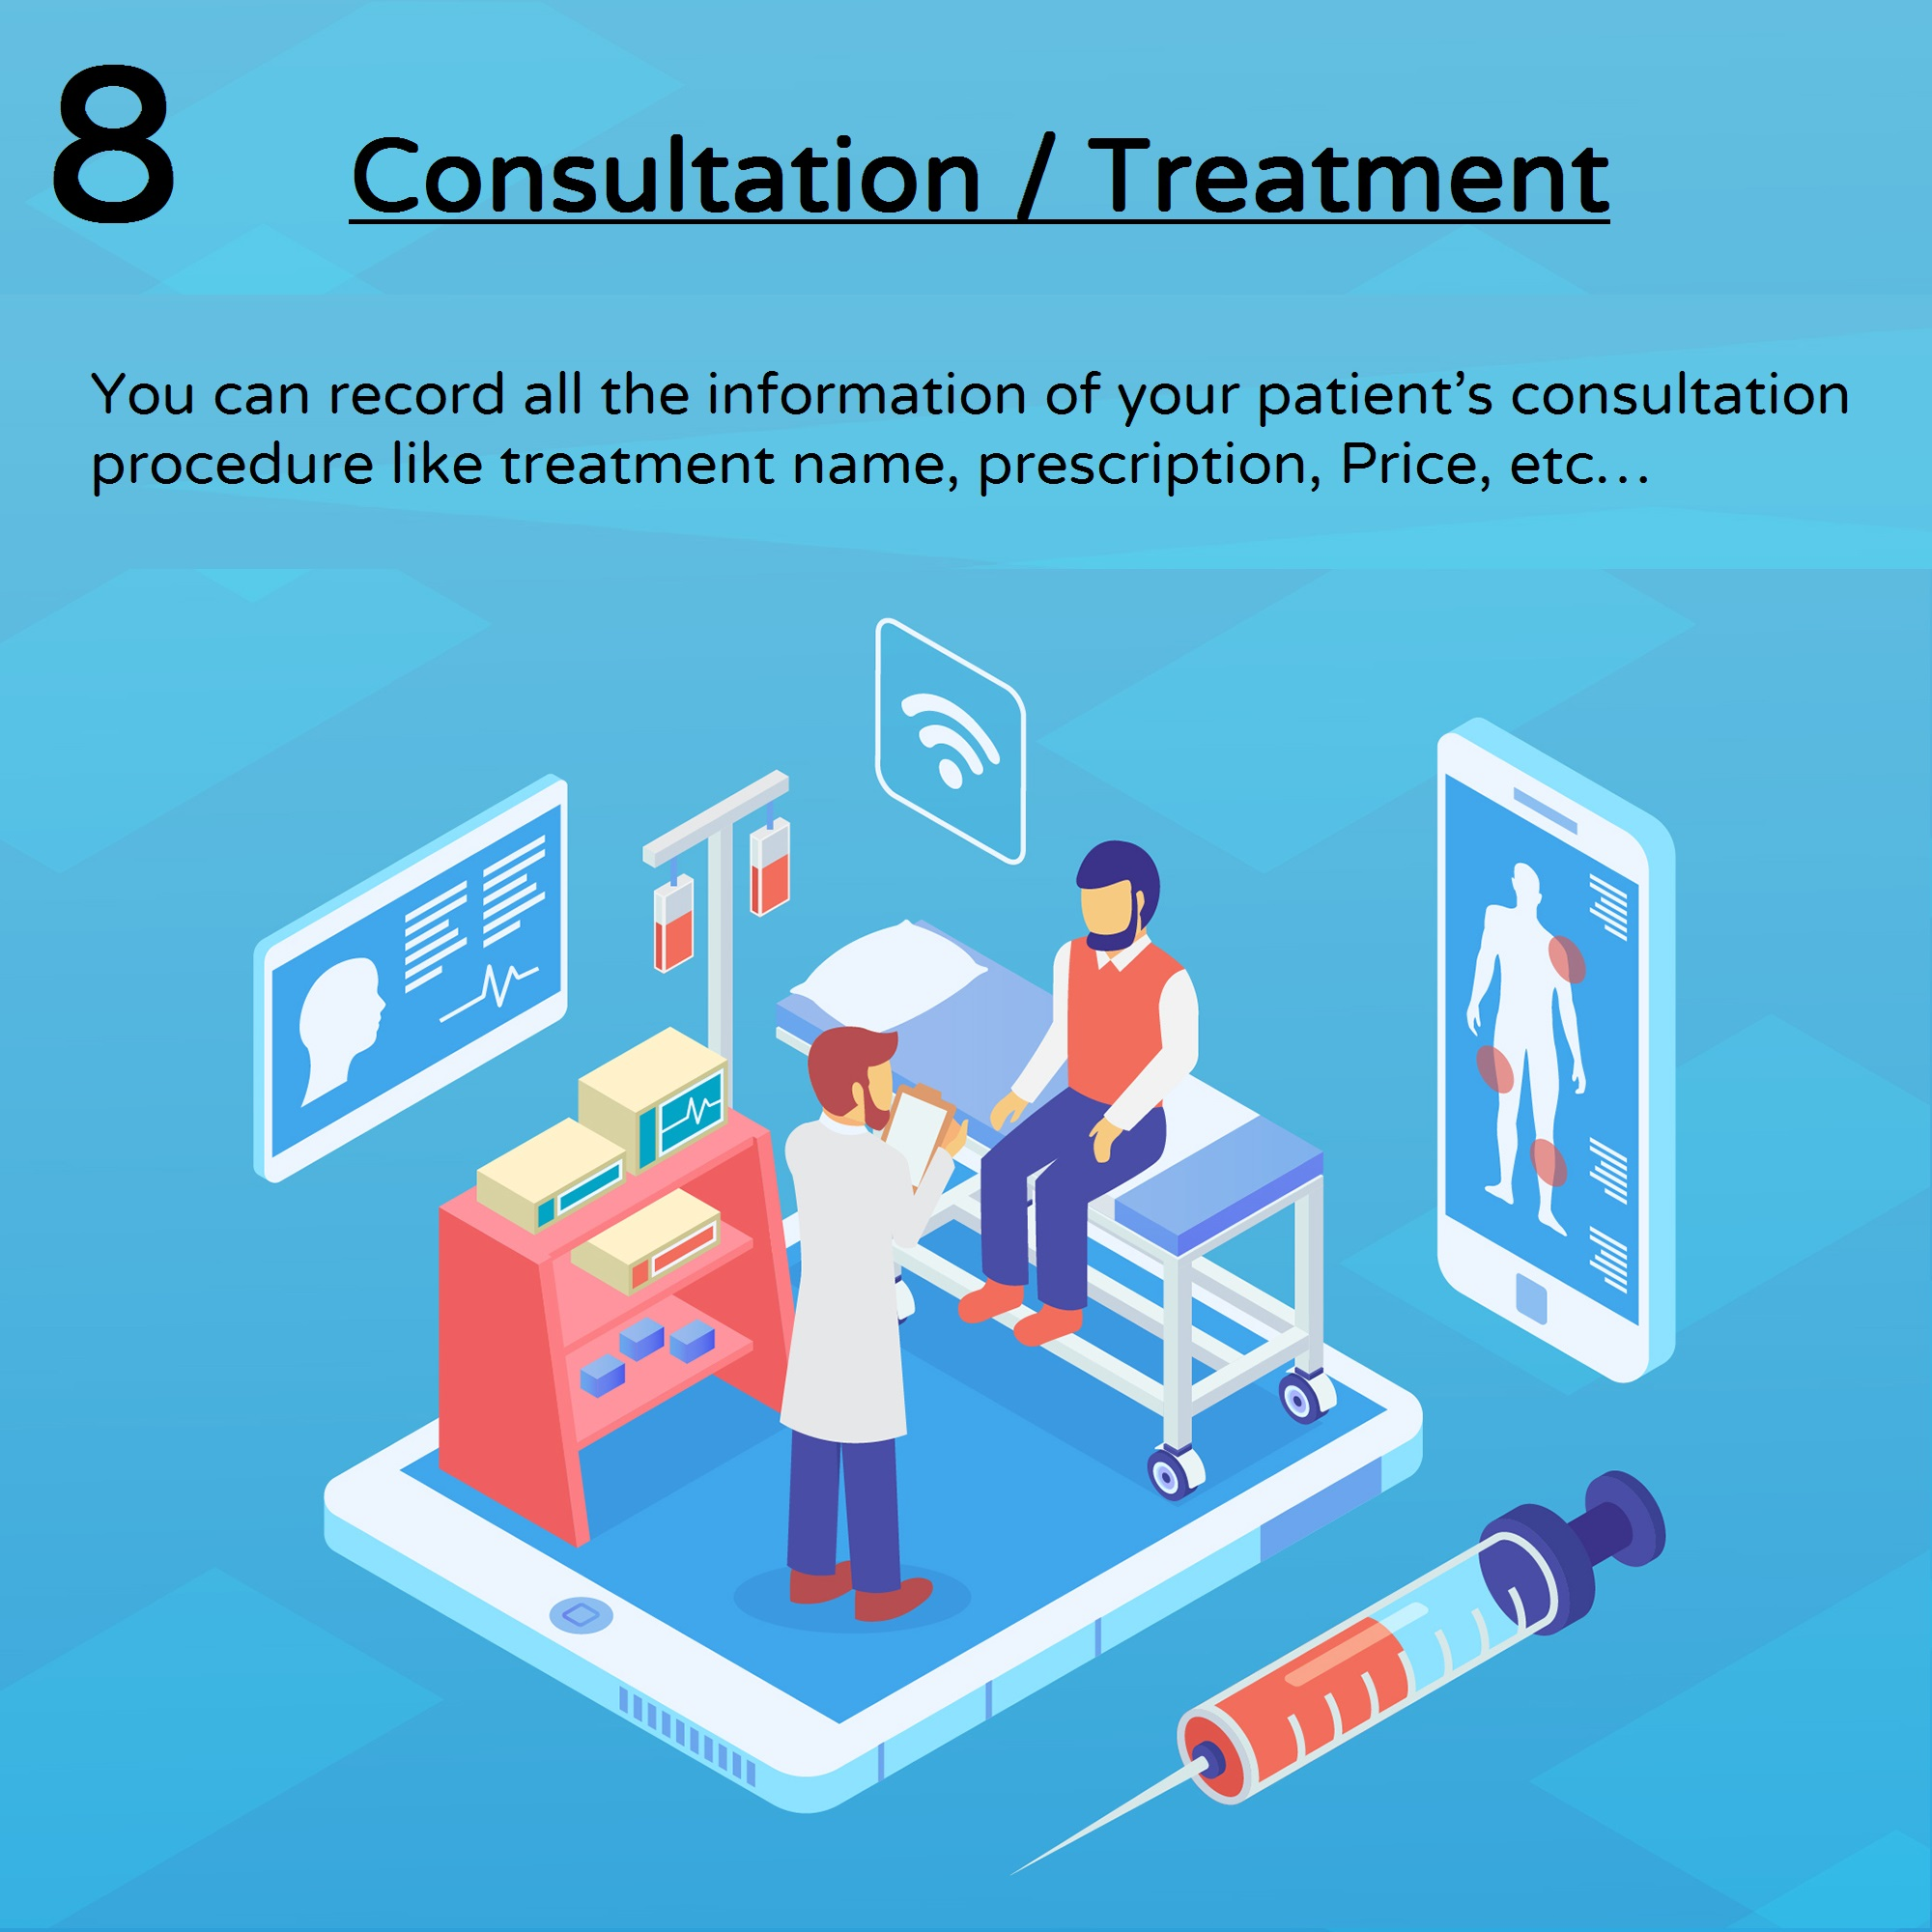 Consultation image for practice management system